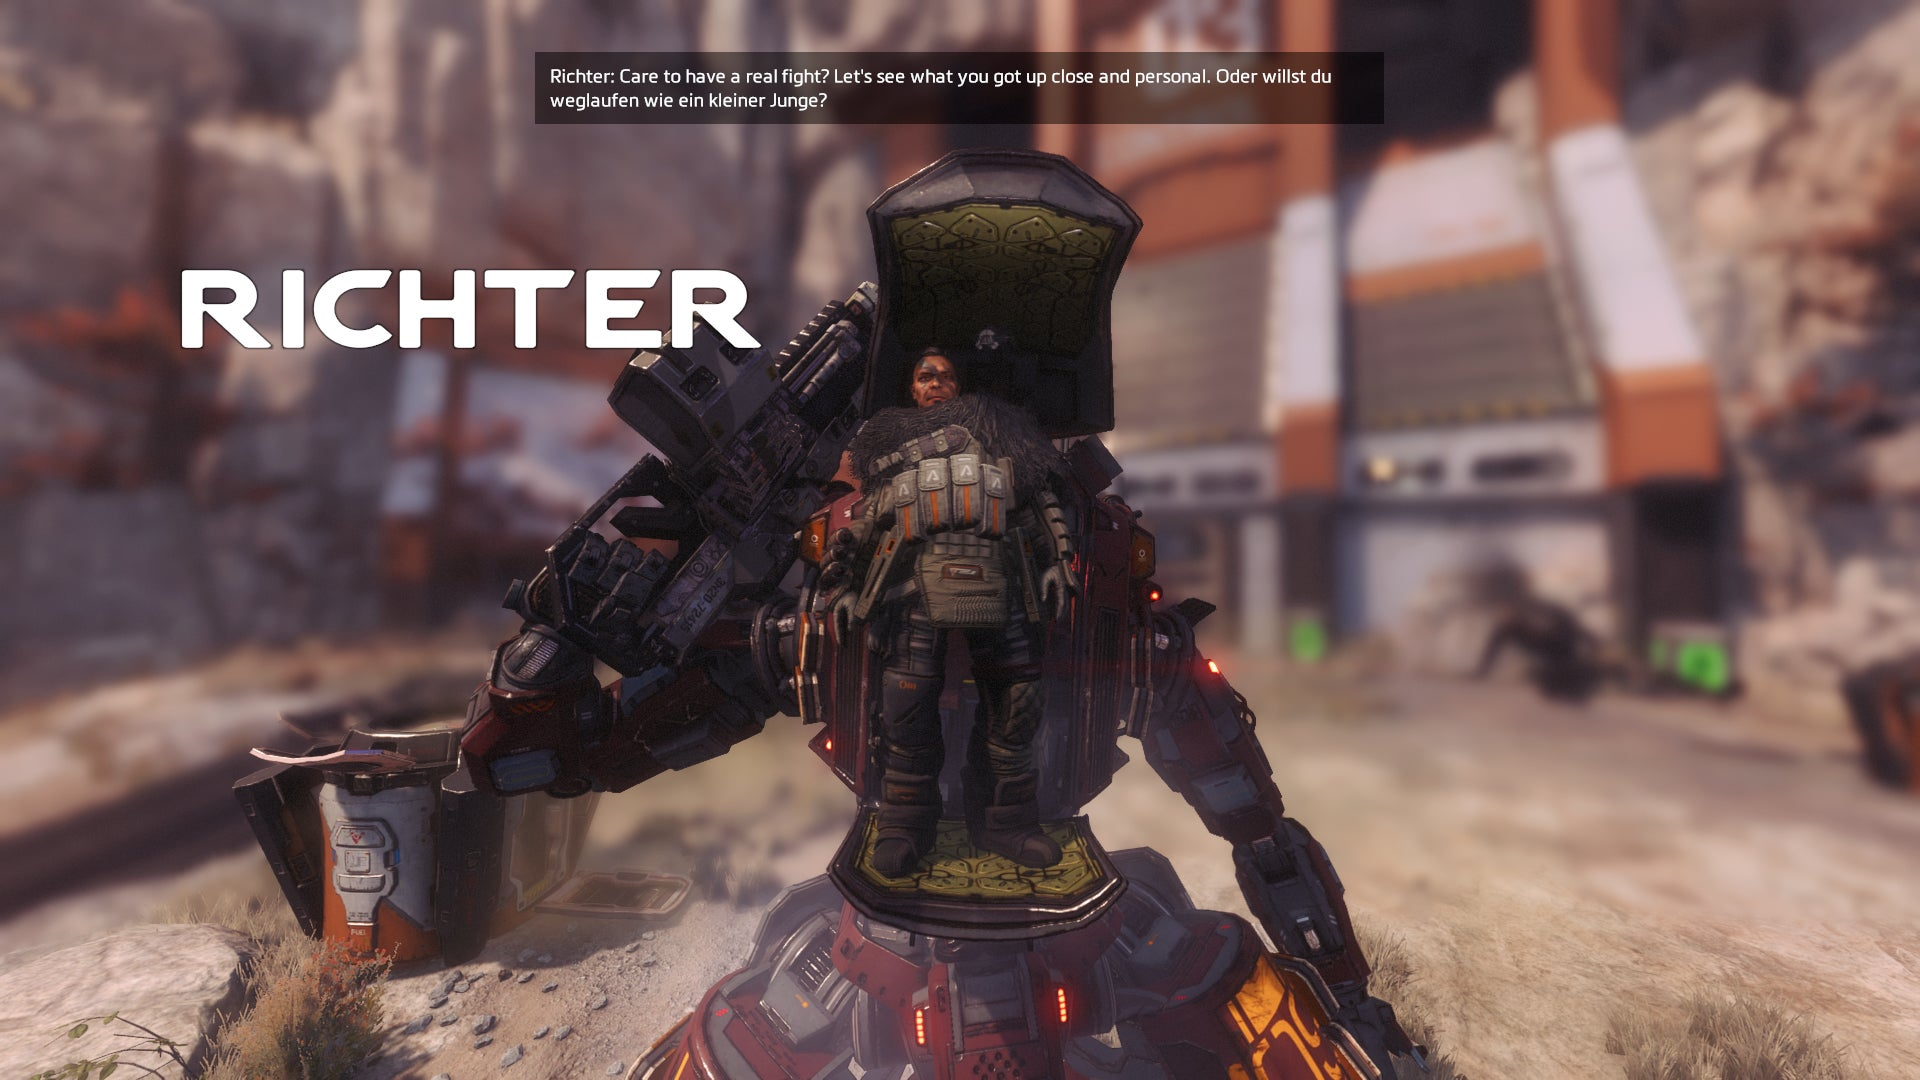 Titanfall 2 Review: Prepare For More Mech-dropping, Wall